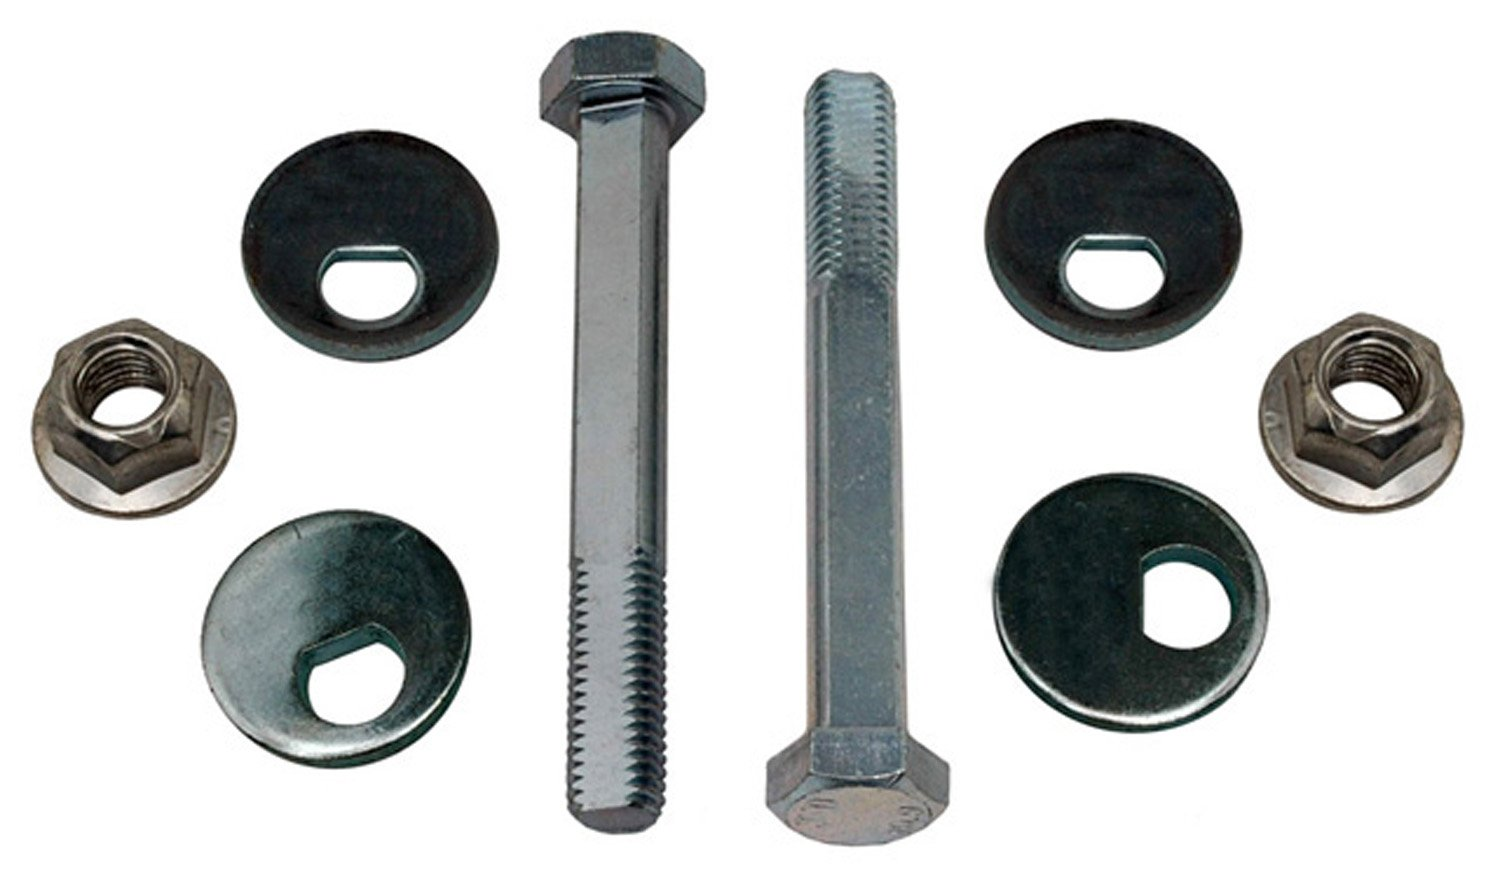 ACDelco 45K0181 Professional Front Caster/Pinion Angle Bolt Kit with Cams and Nuts